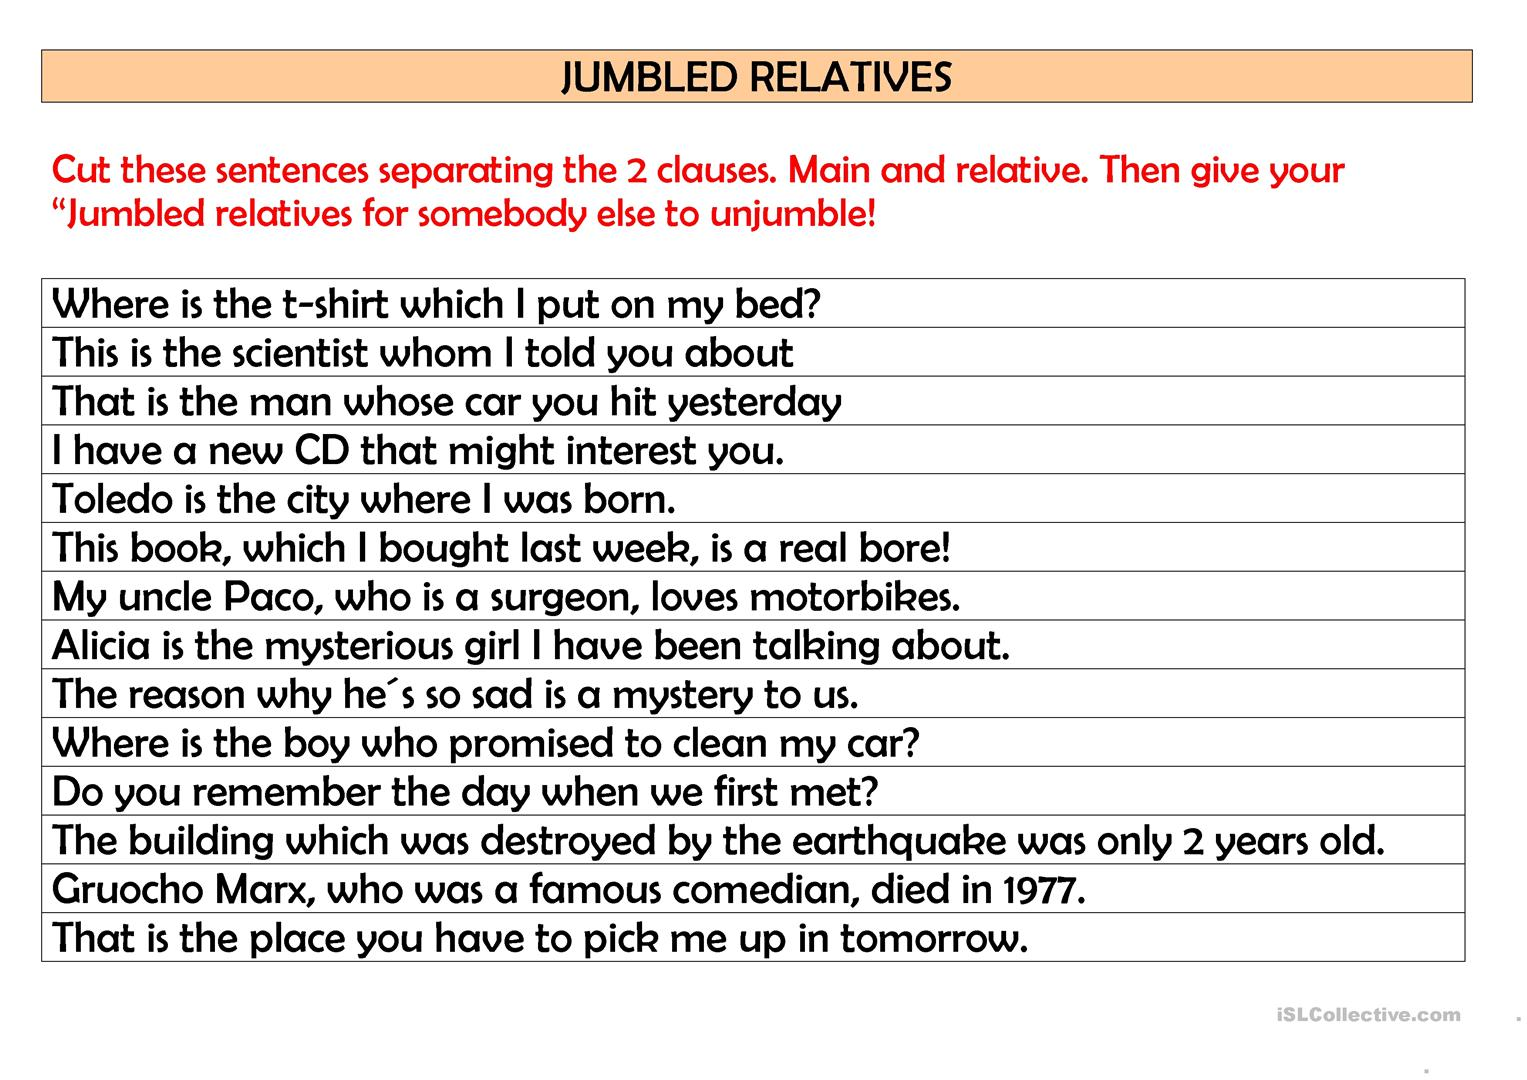 Jumbled Relatives